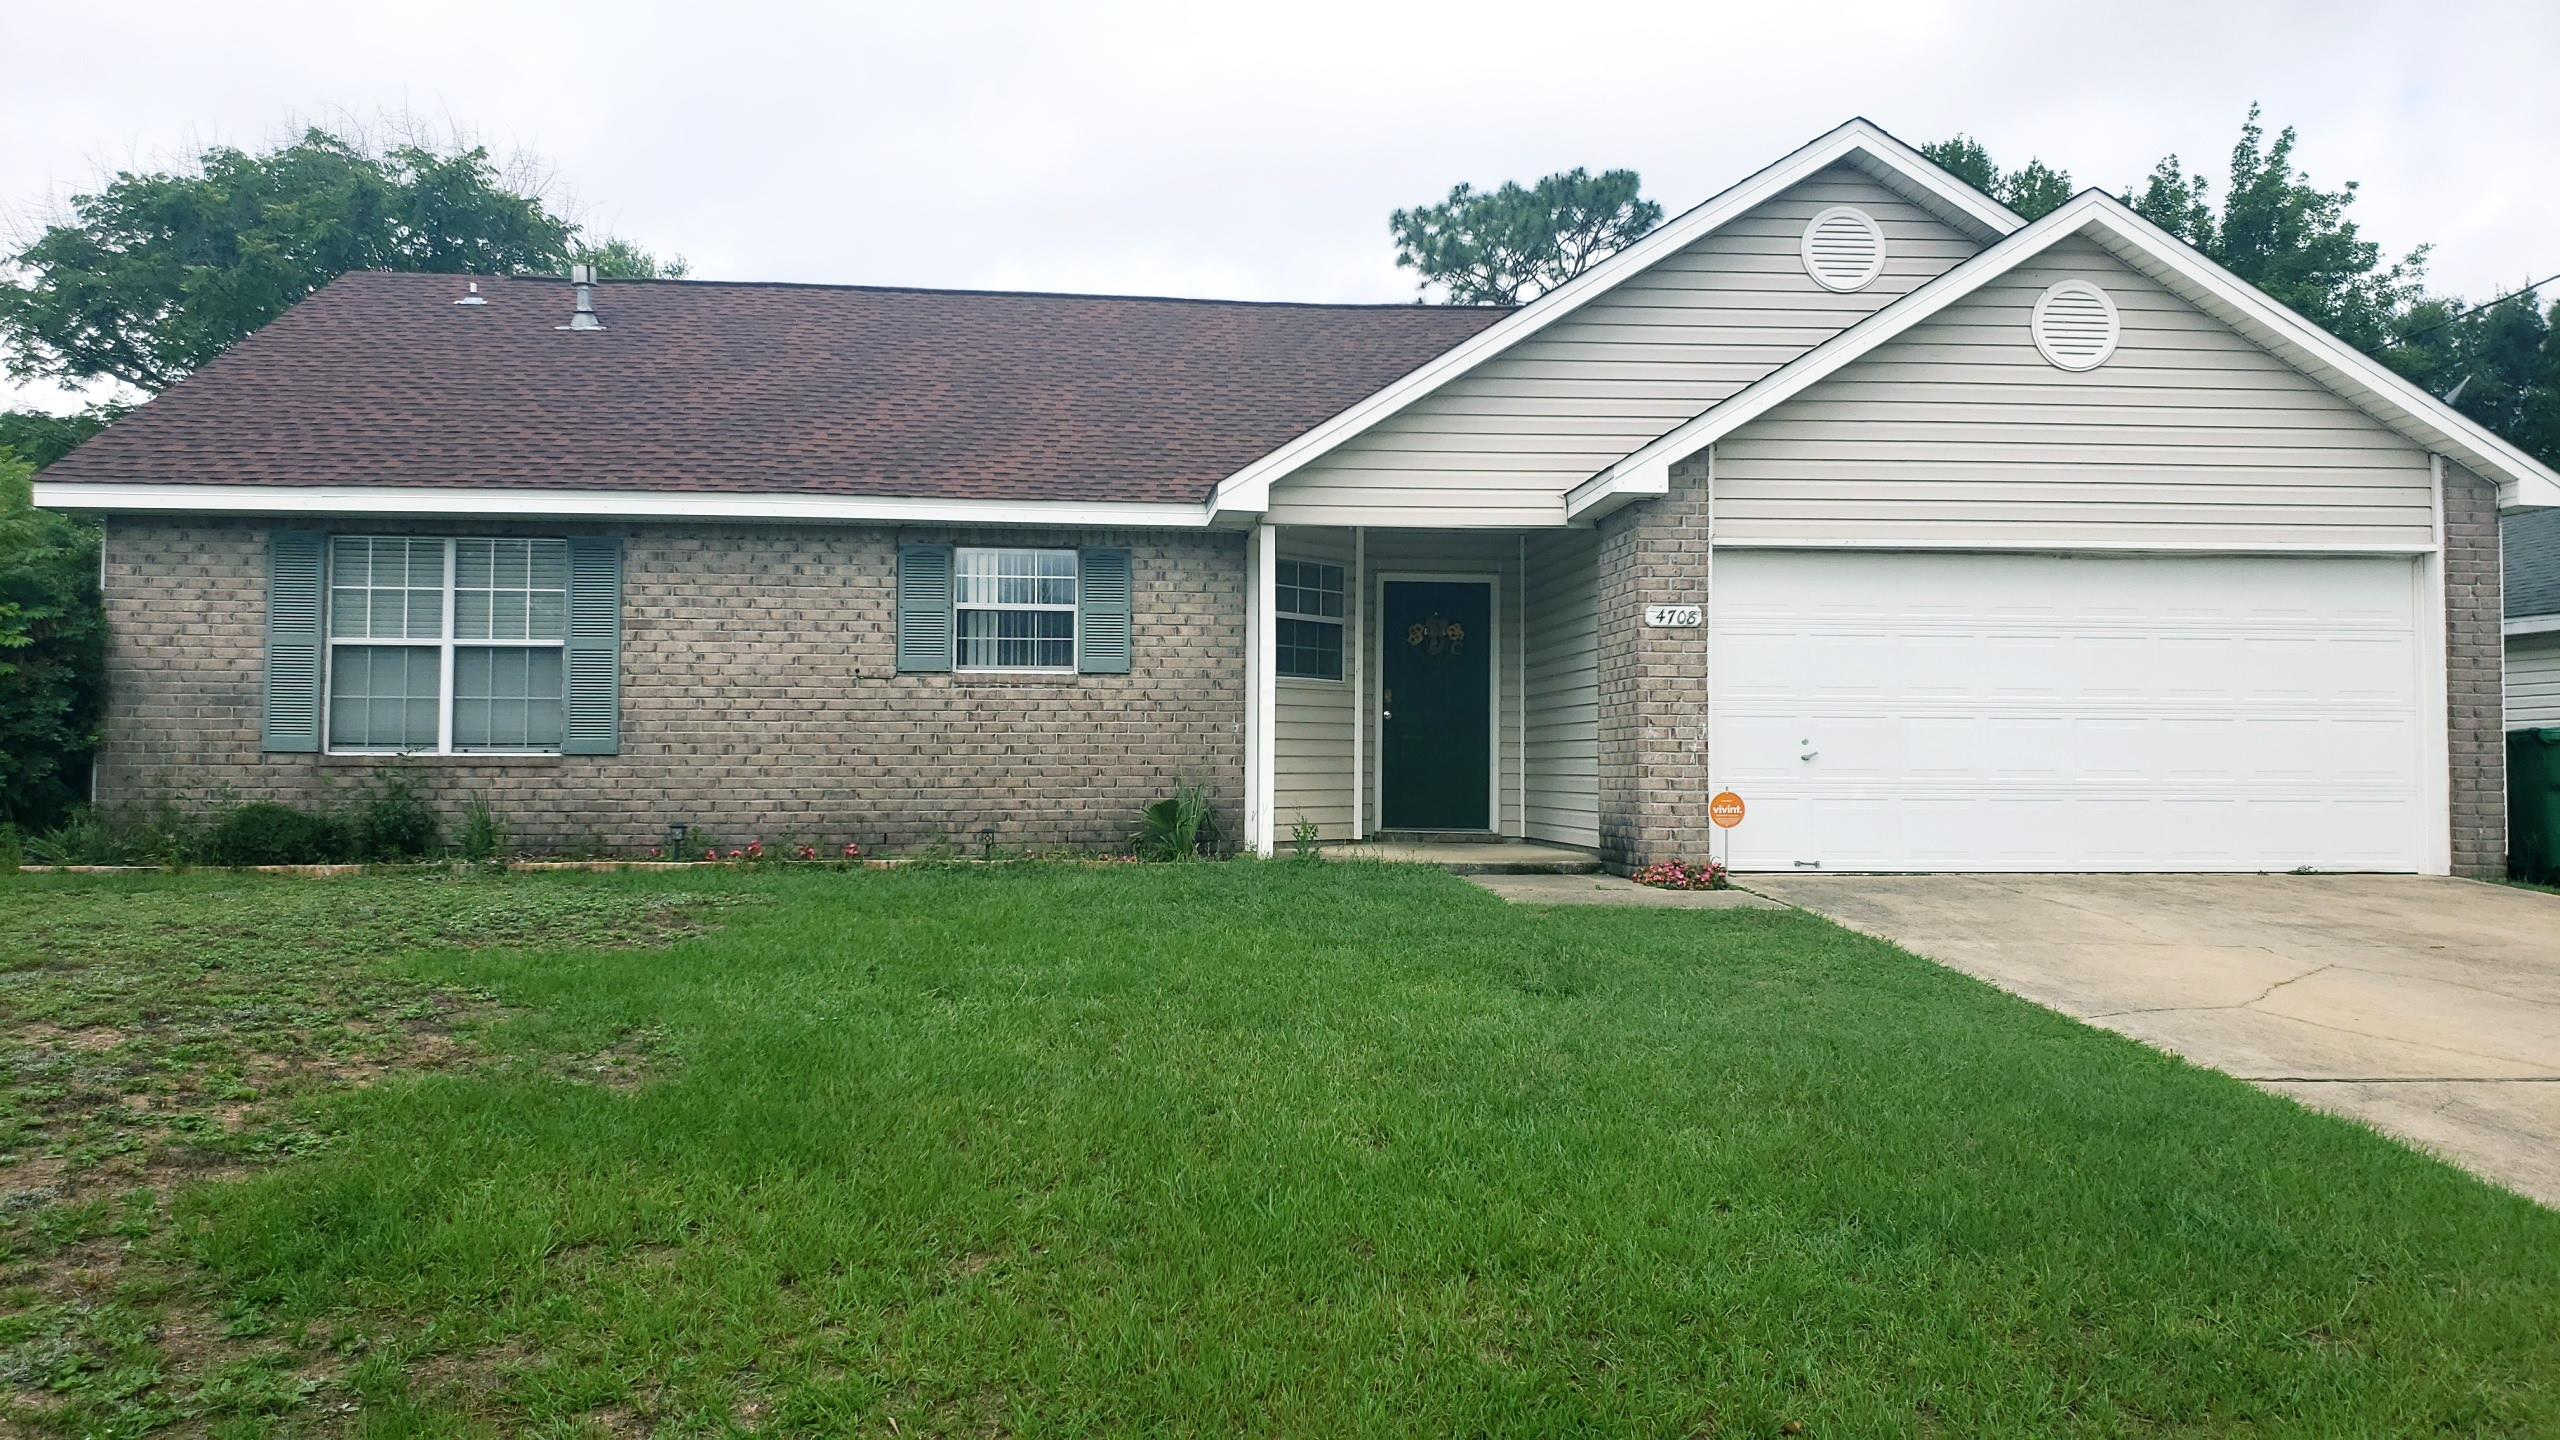 South of 1-10 on Flat Lot ~ This 3/2/2, split bedroom design includes a spacious kitchen/dining room